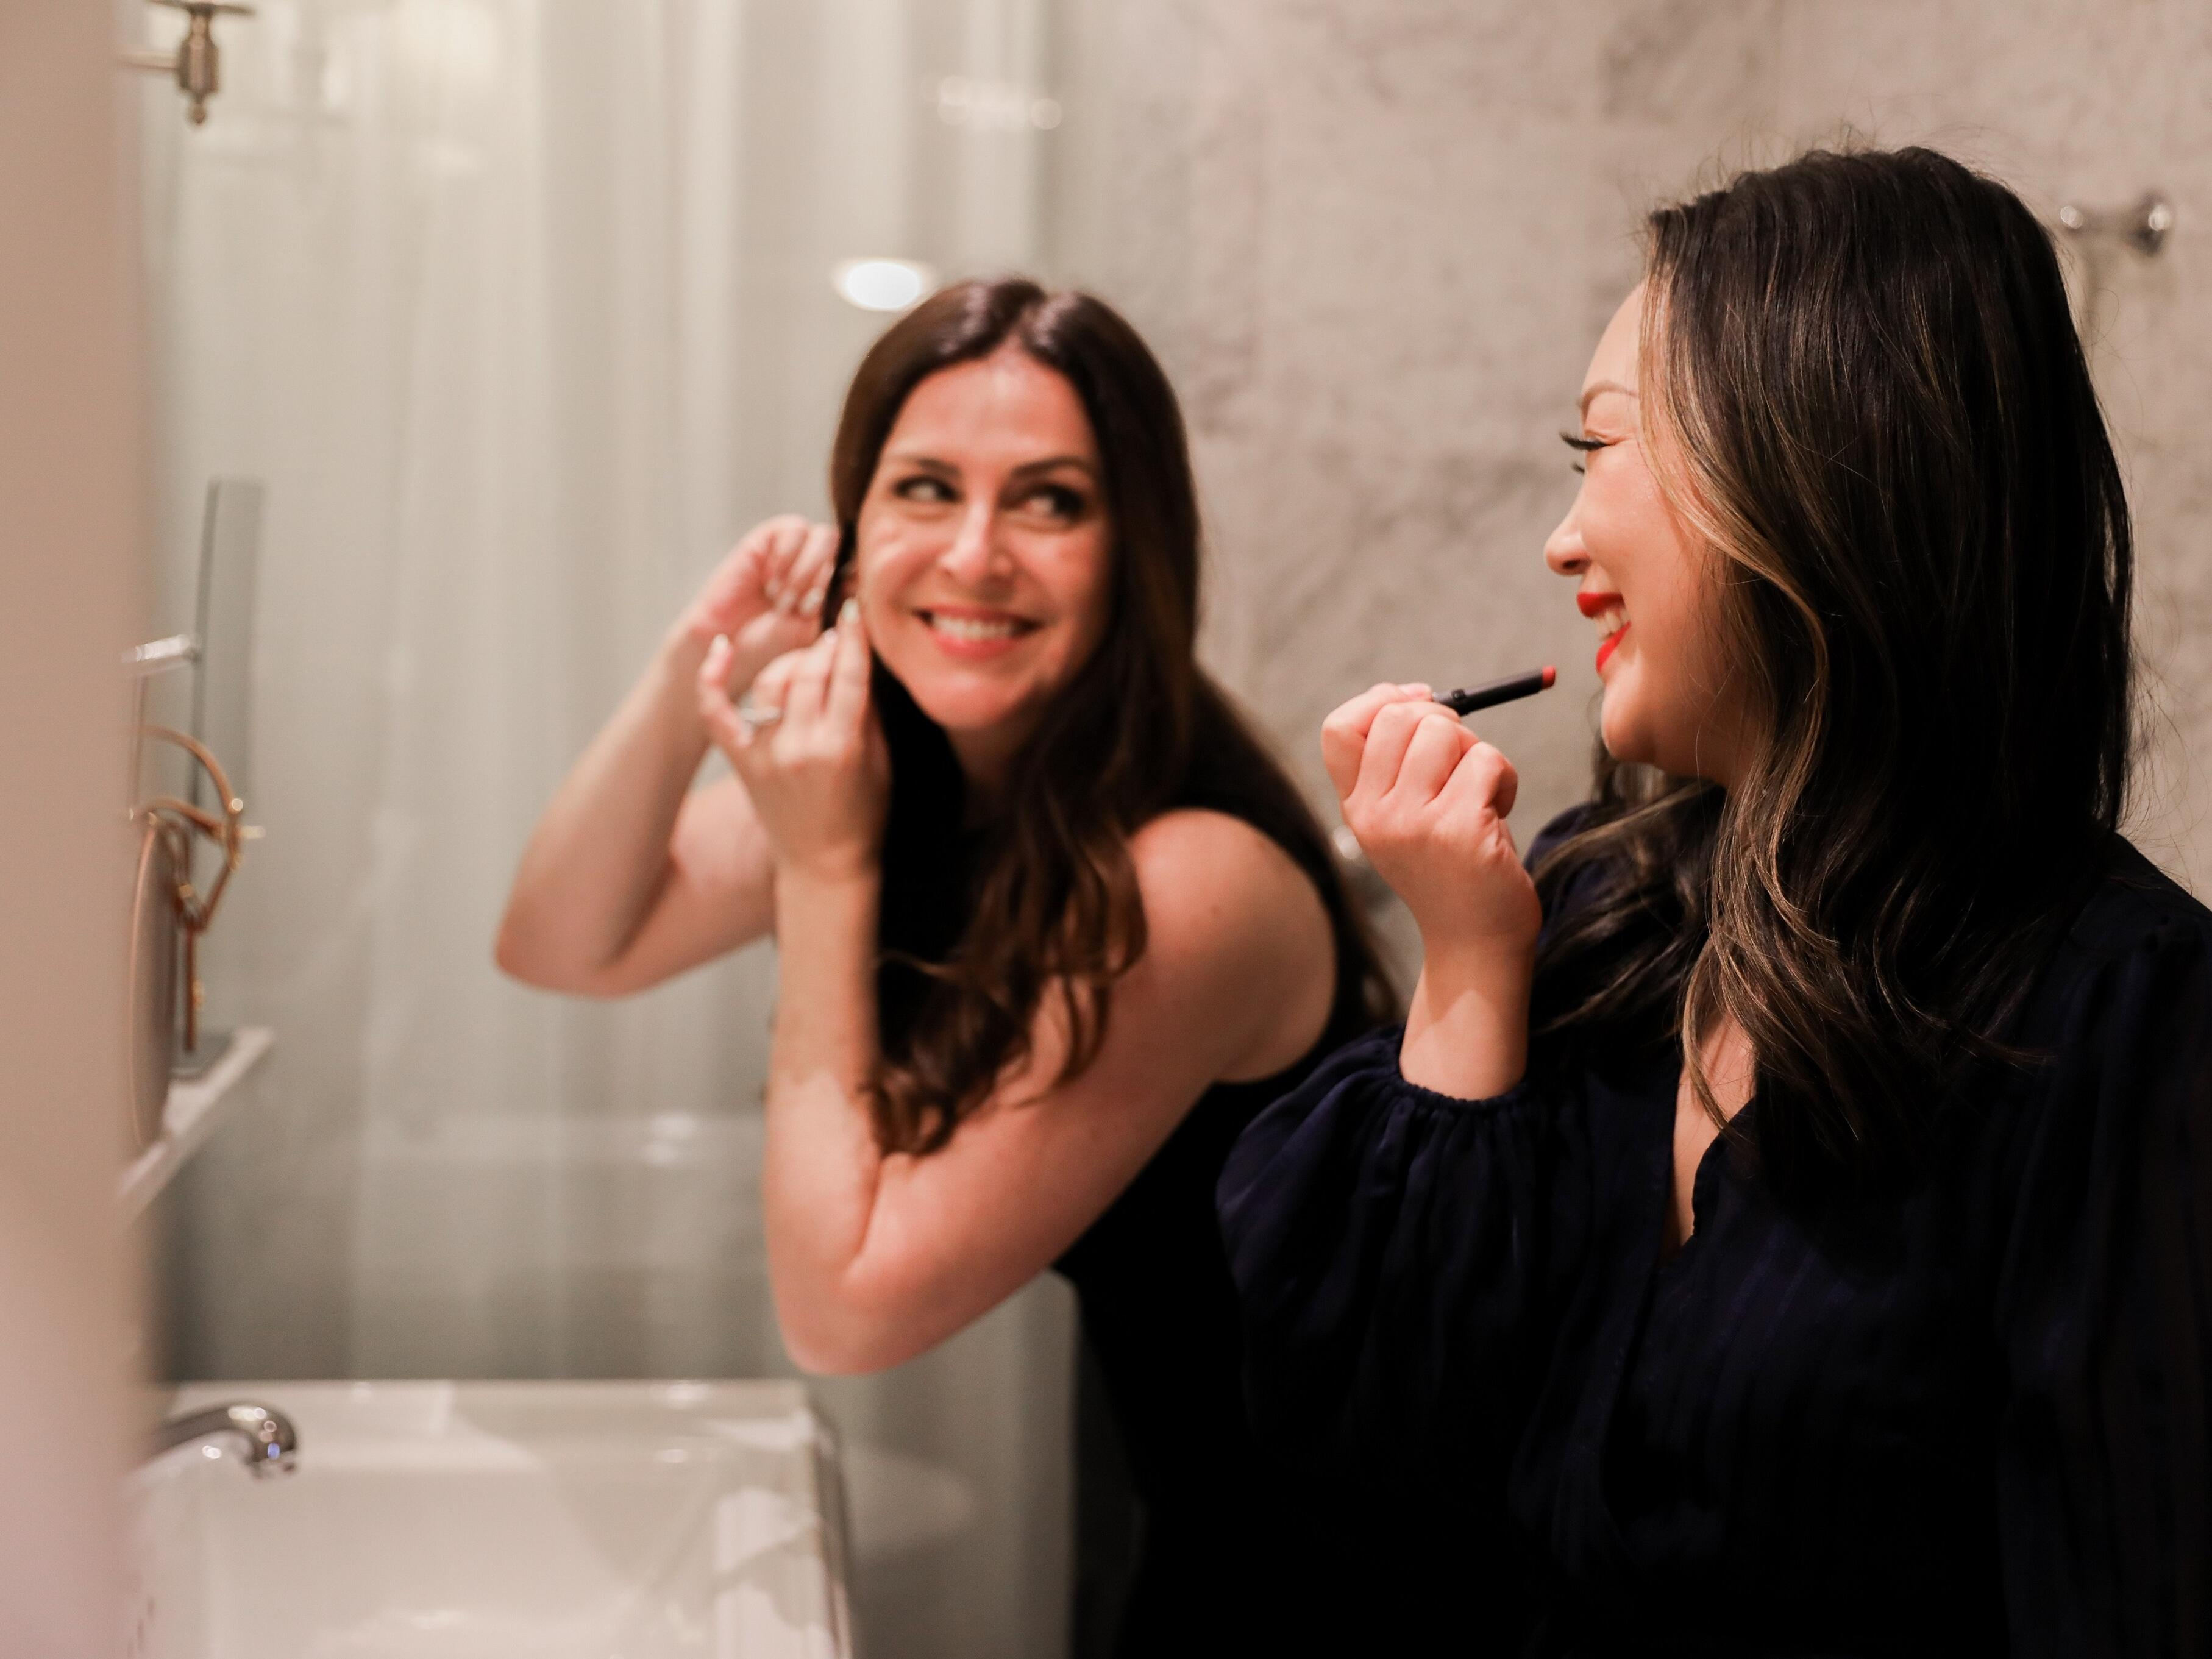 Two women in front of a mirror putting on makeup and earrings.